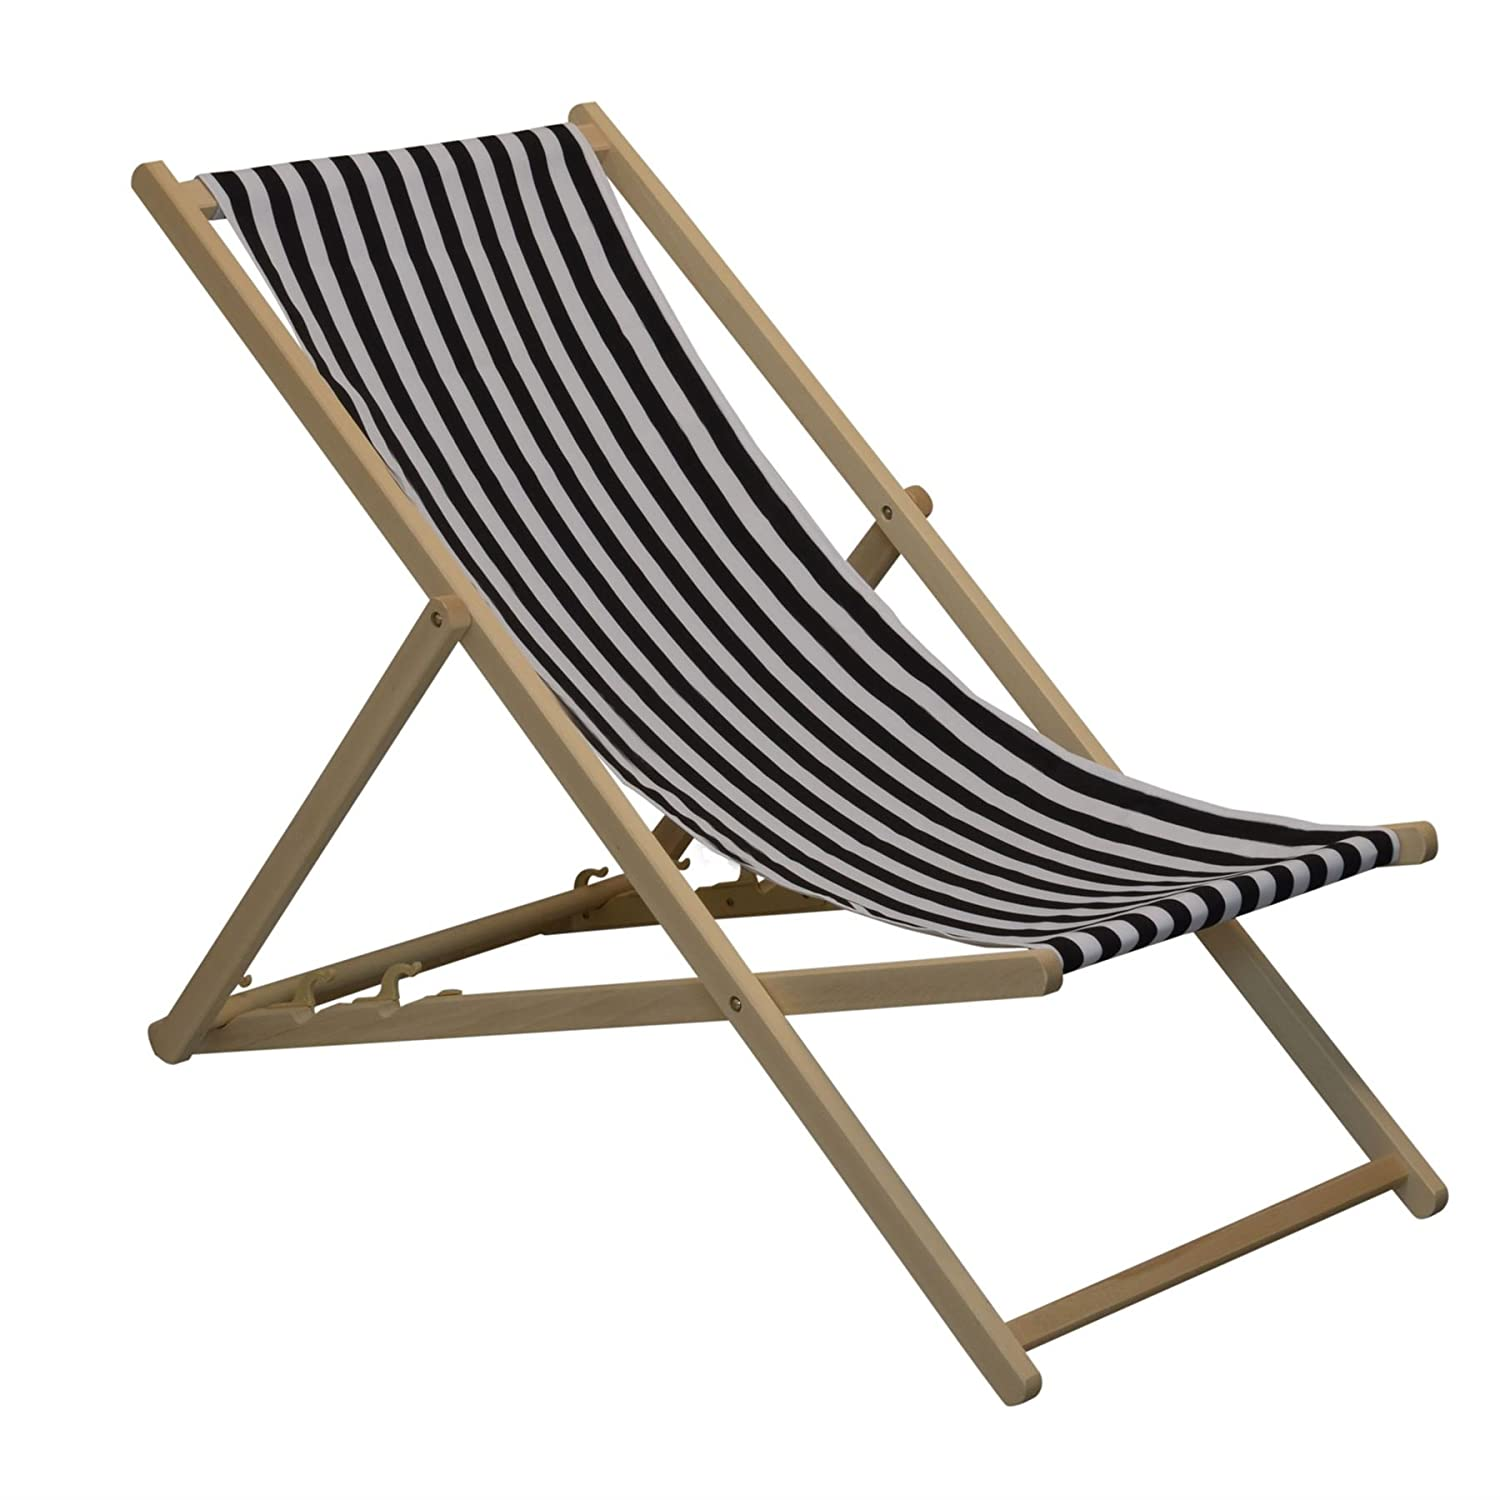 Traditional Adjustable Garden / Beach-style Deck Chair - Black / White Stripe Harbour Housewares